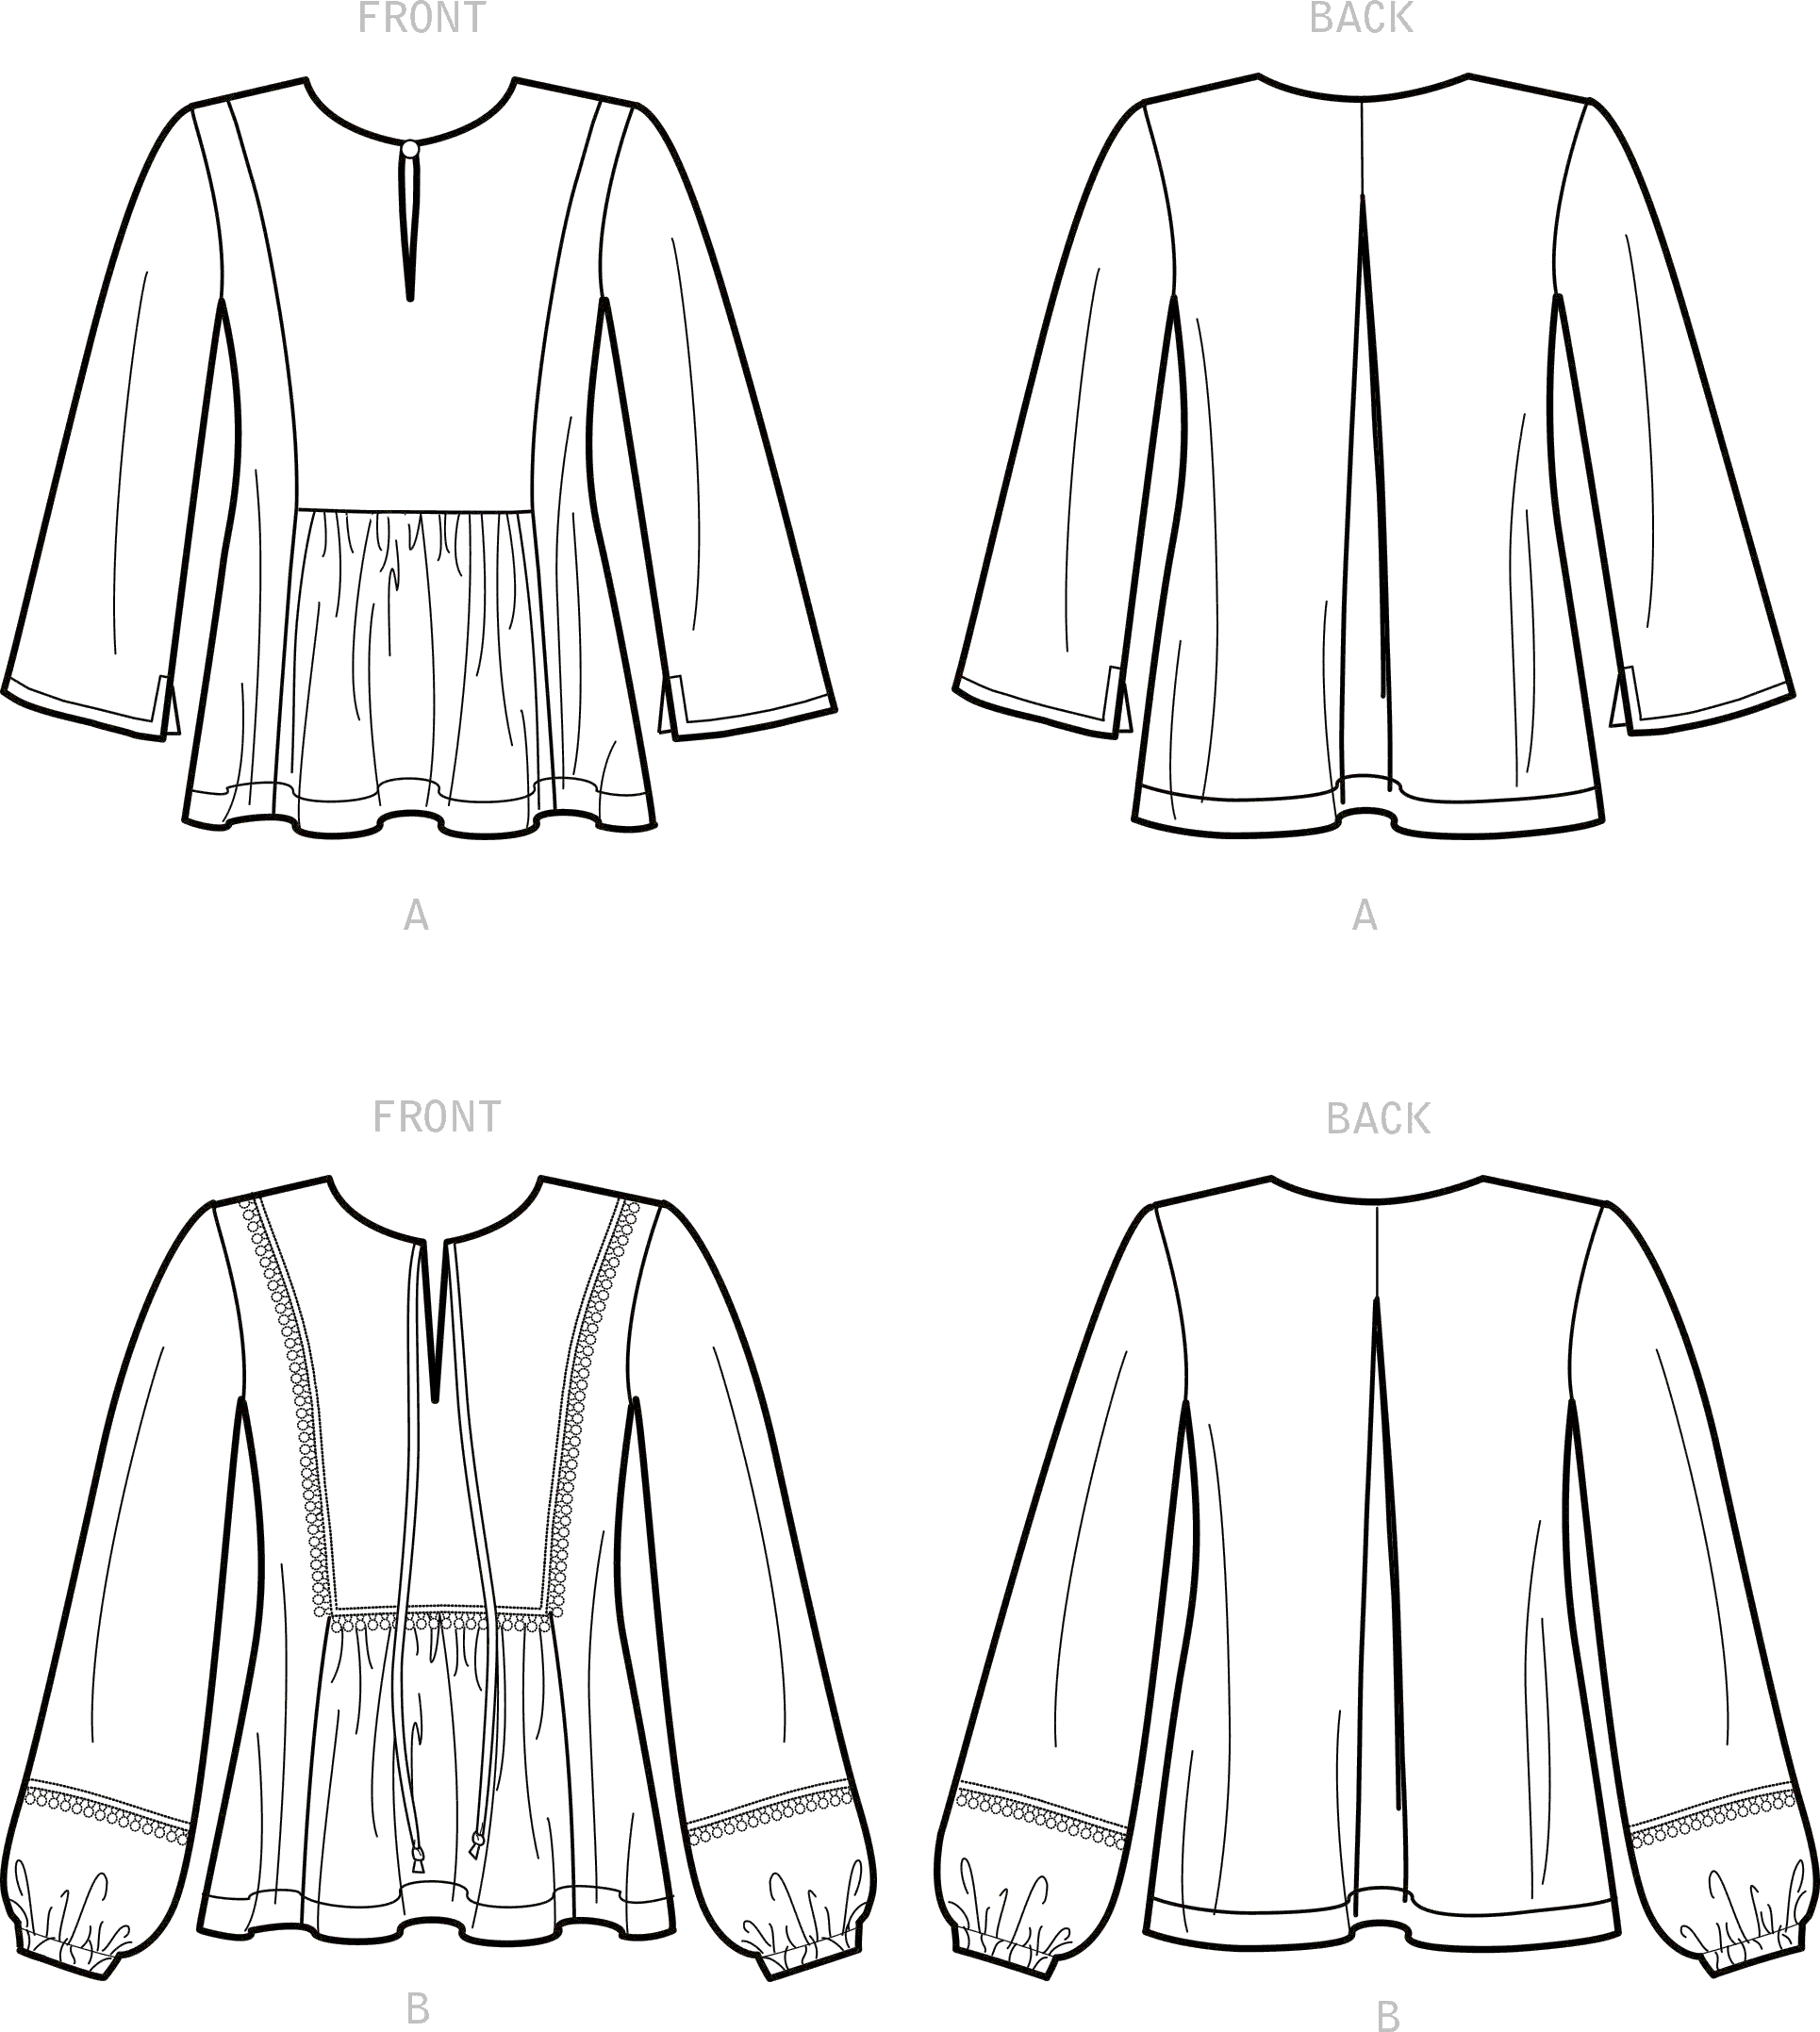 New Look Sewing Pattern N6671 Misses Top 6671 Line Art From Patternsandplains.com